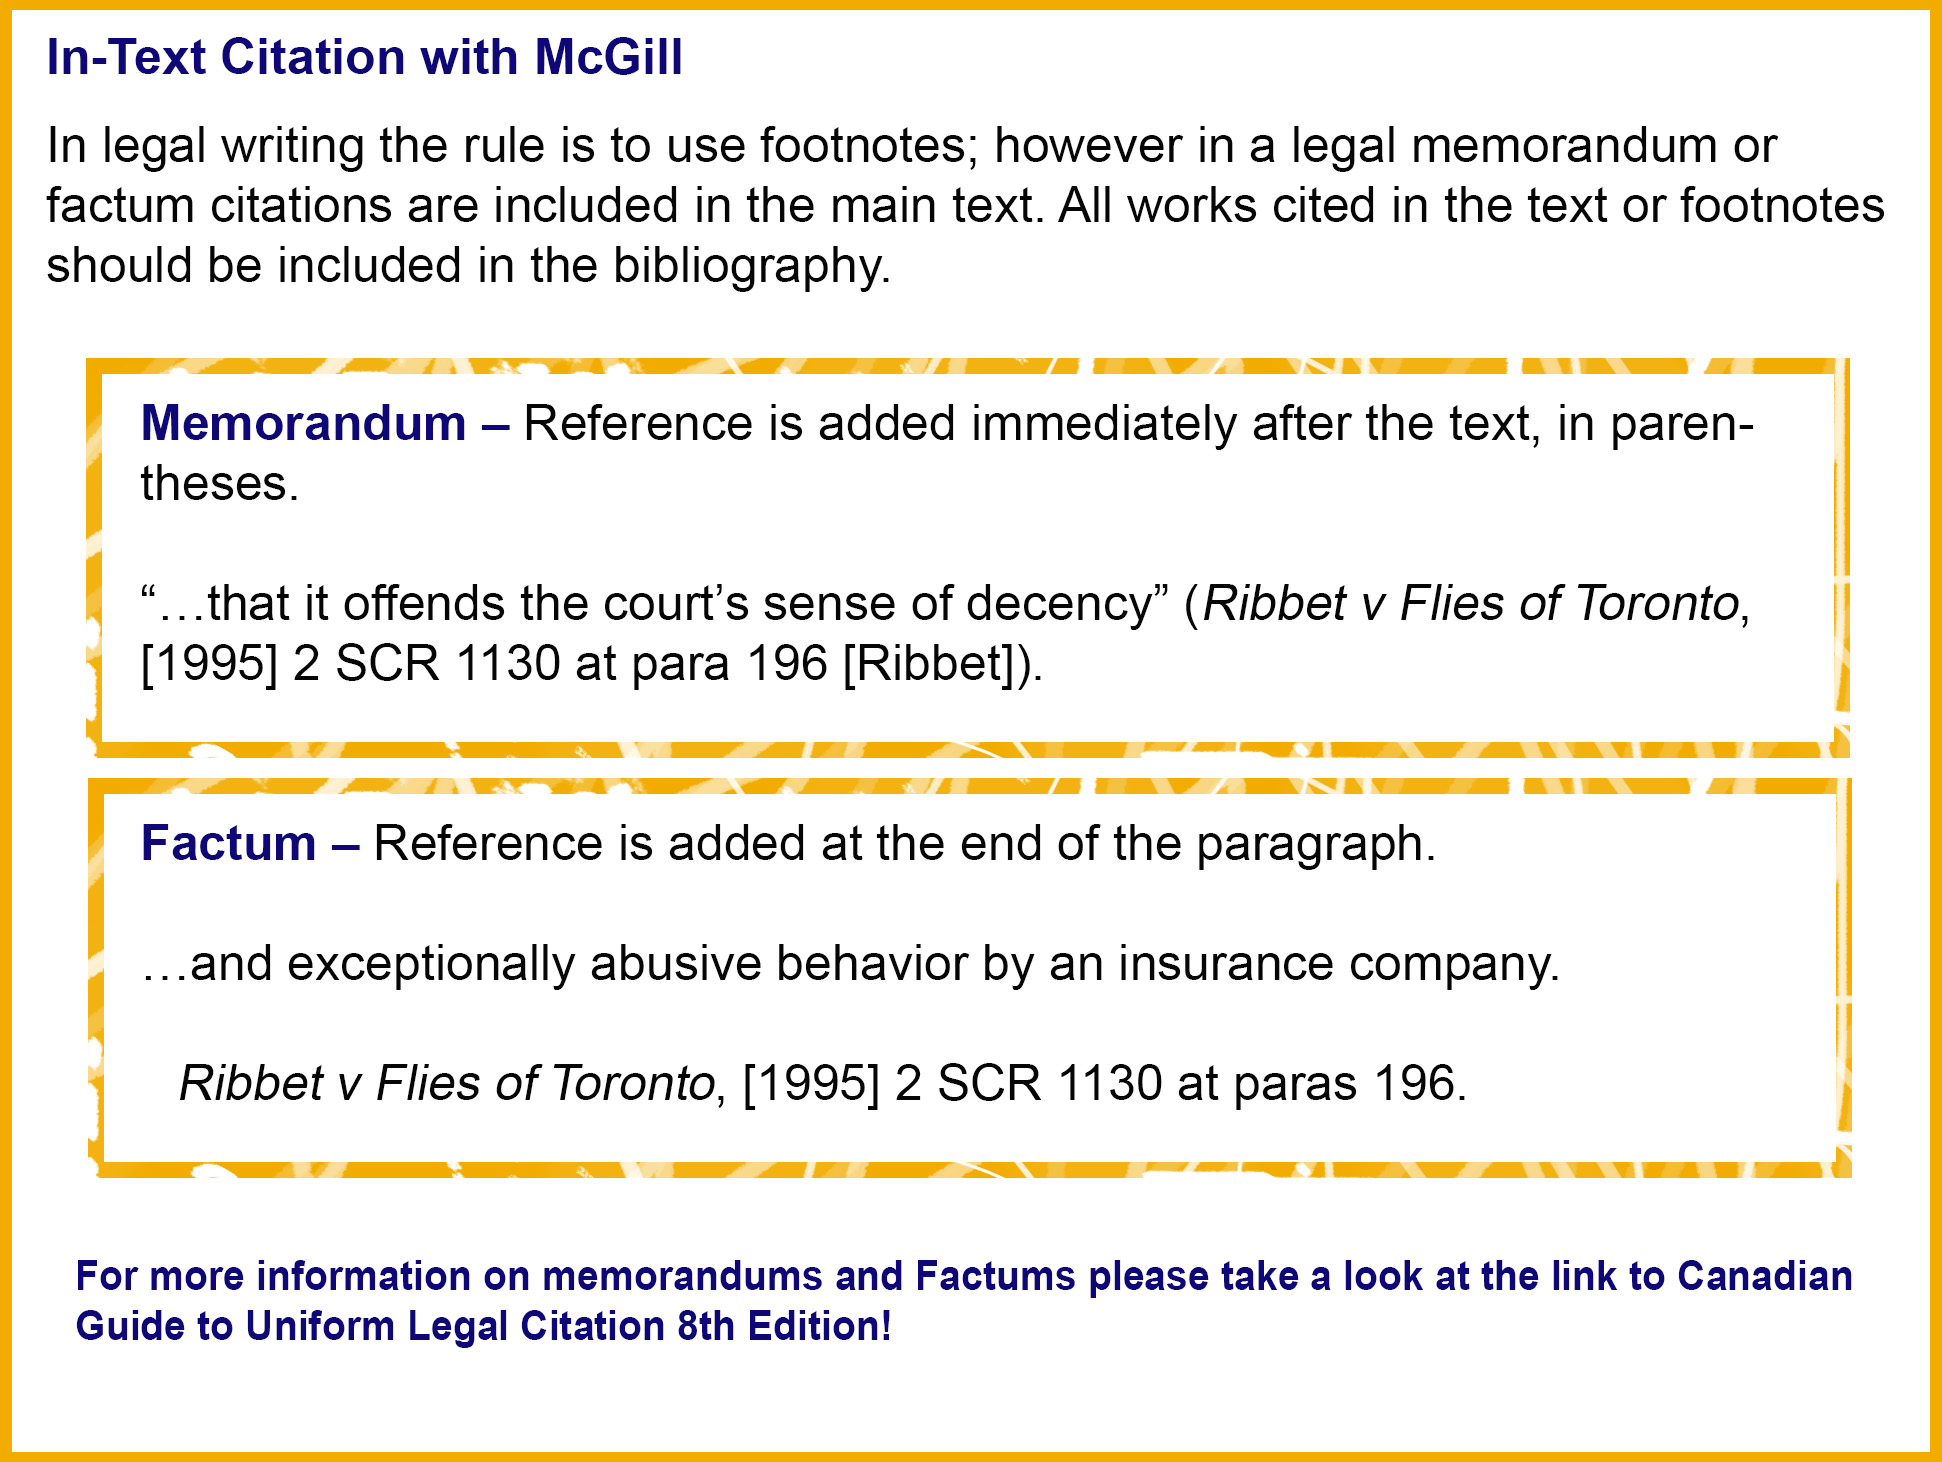 Mcgill 8th edition citation style guide libguides at dalhousie citation style guide ccuart Images